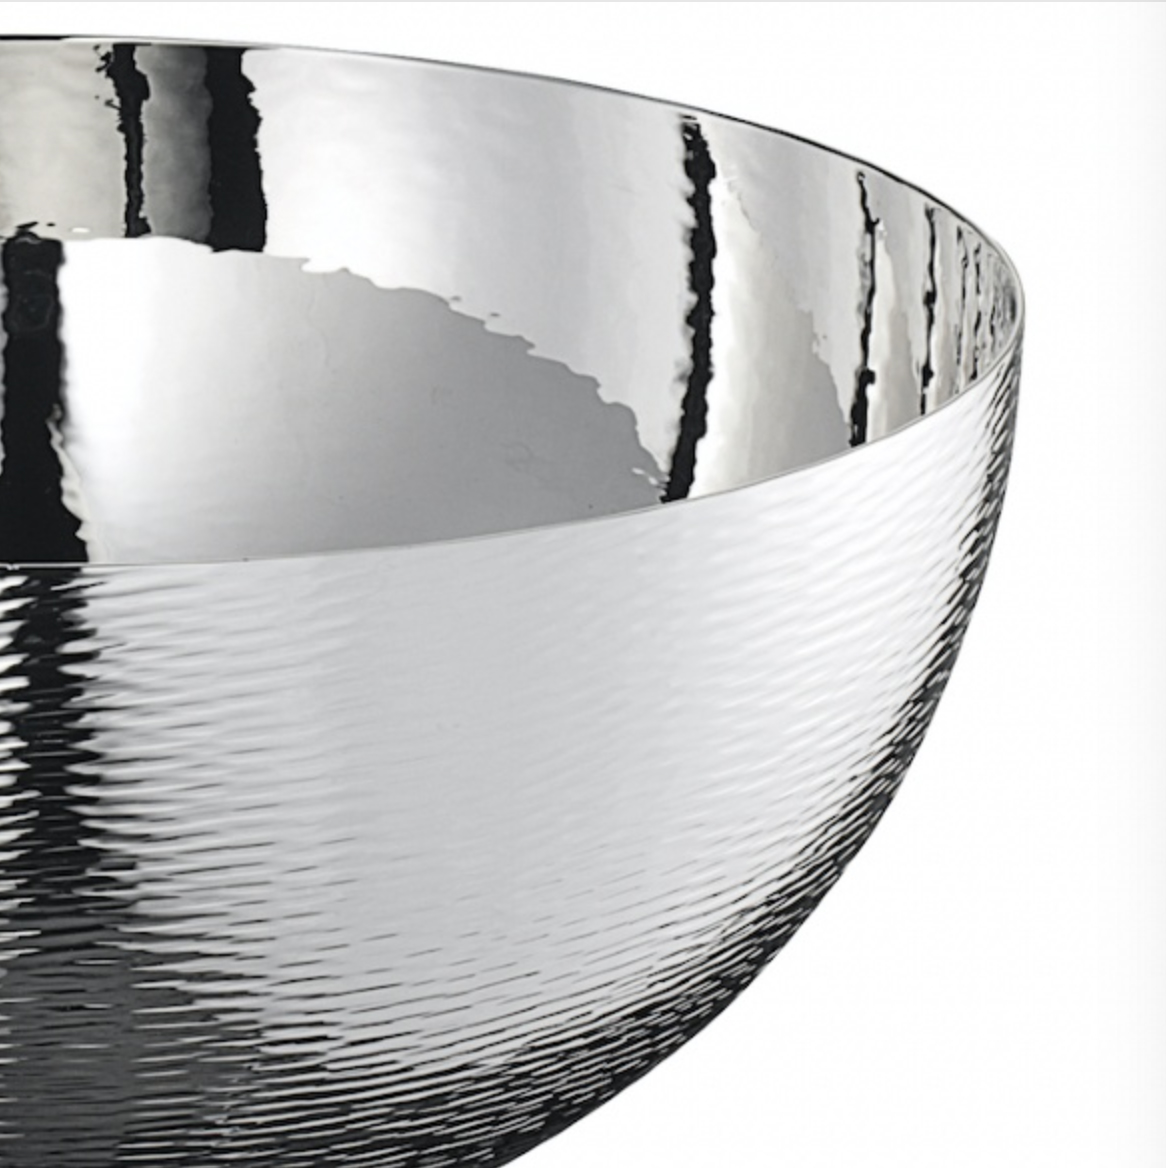 Saturno Bowl - The elegant Saturno bowl centerpiece features a completely polished silver alloy finish internally.